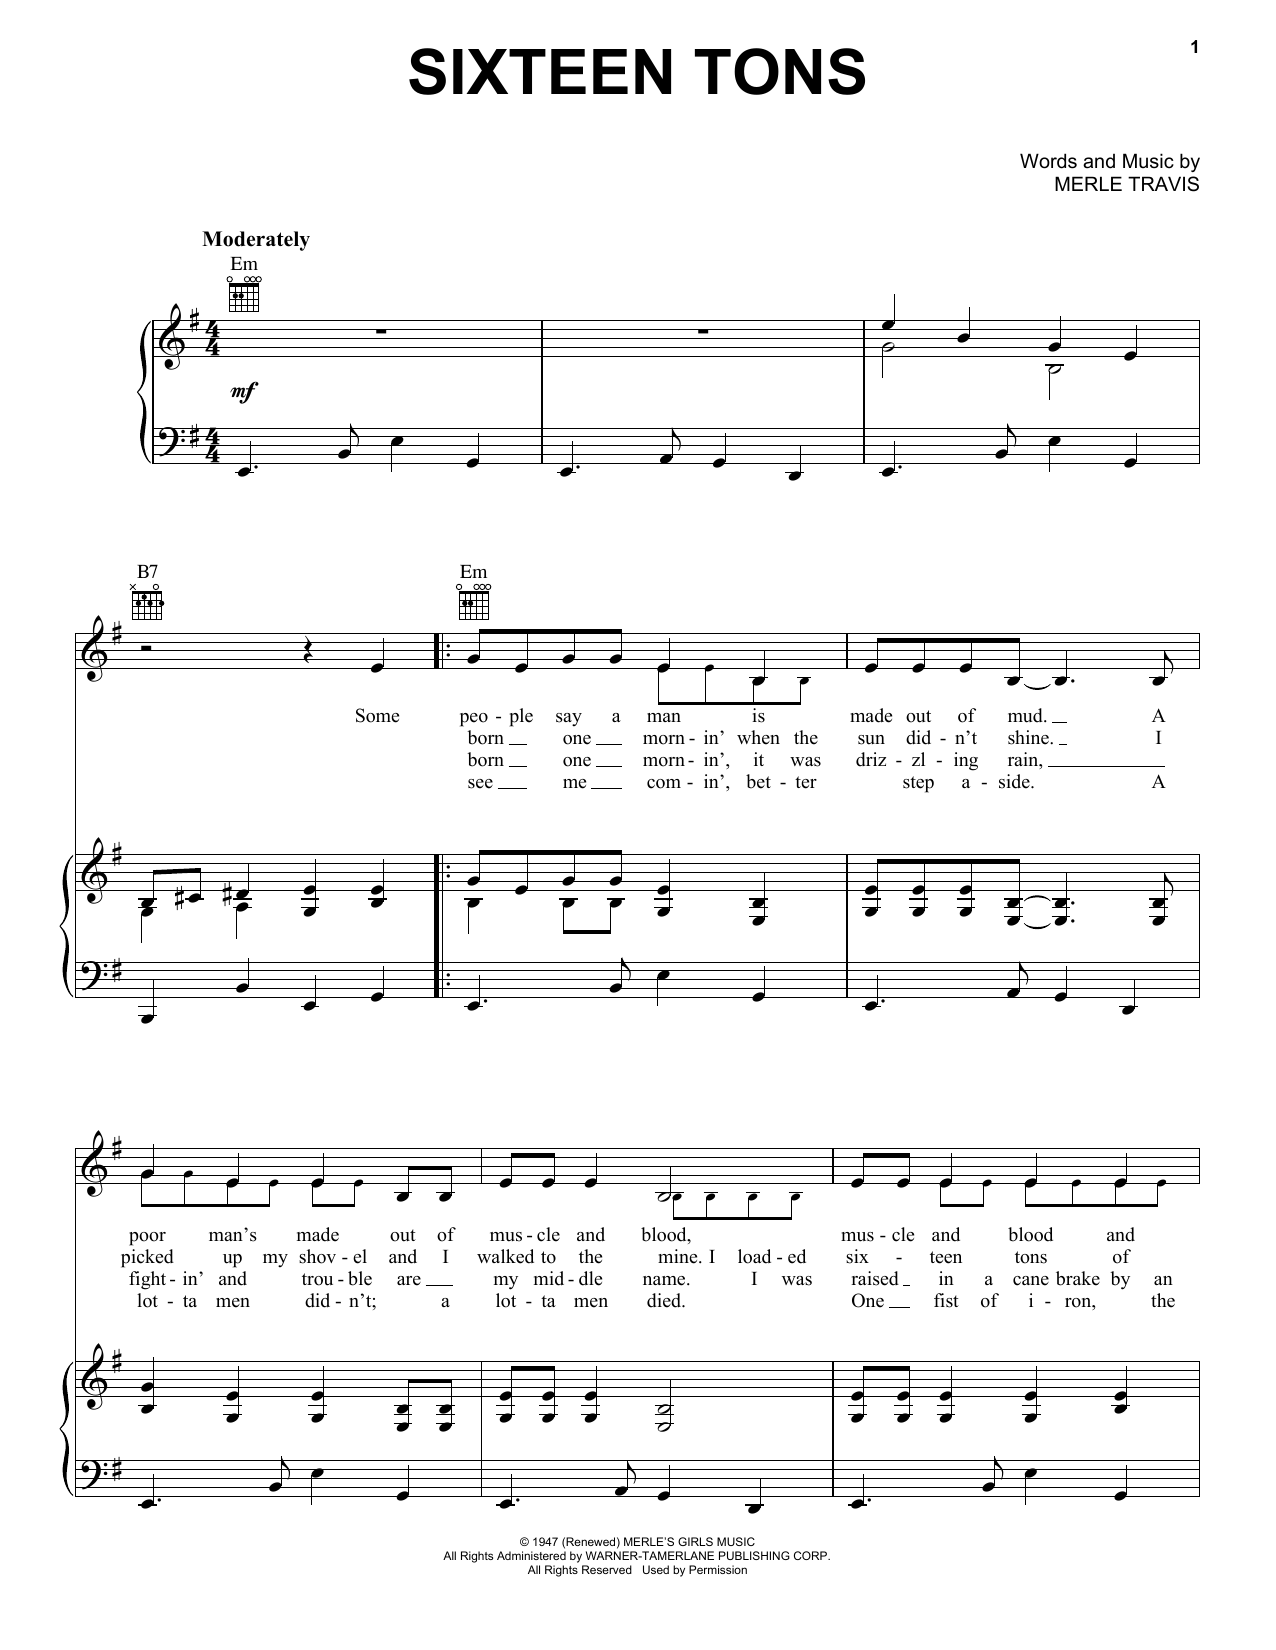 Sixteen Tons Sheet Music